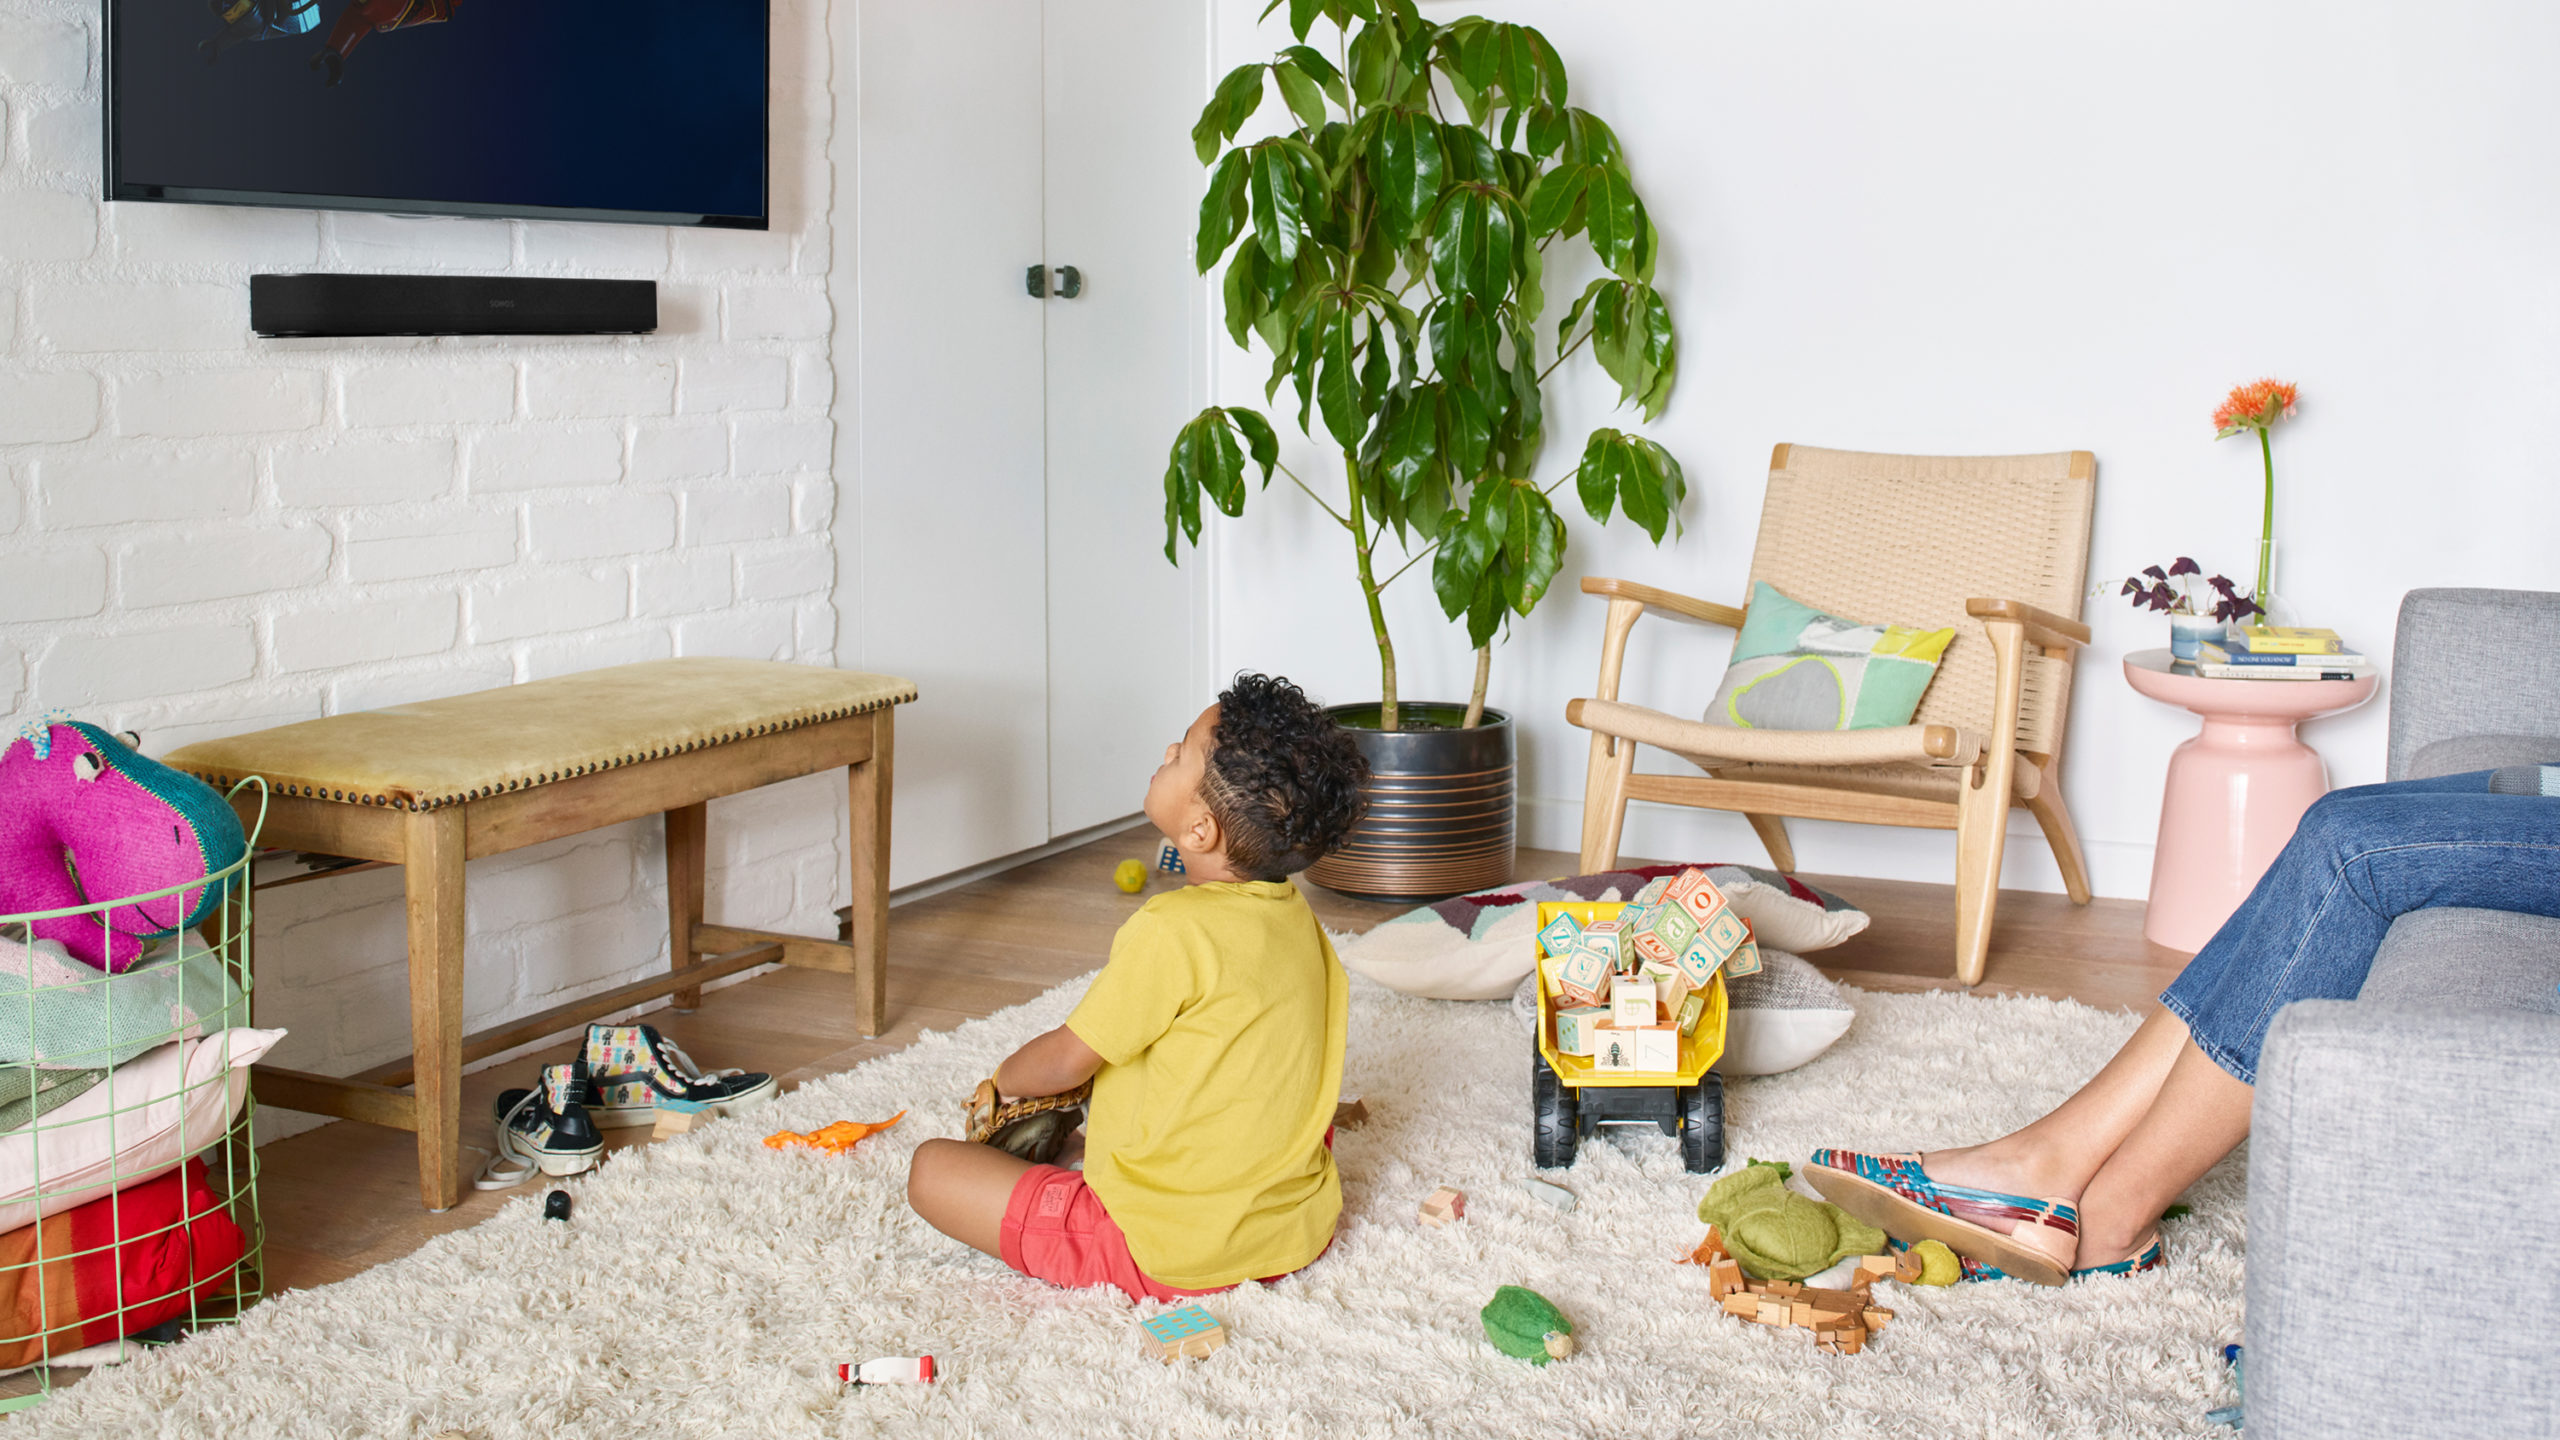 Sonos Home theatre watching a movie as a family